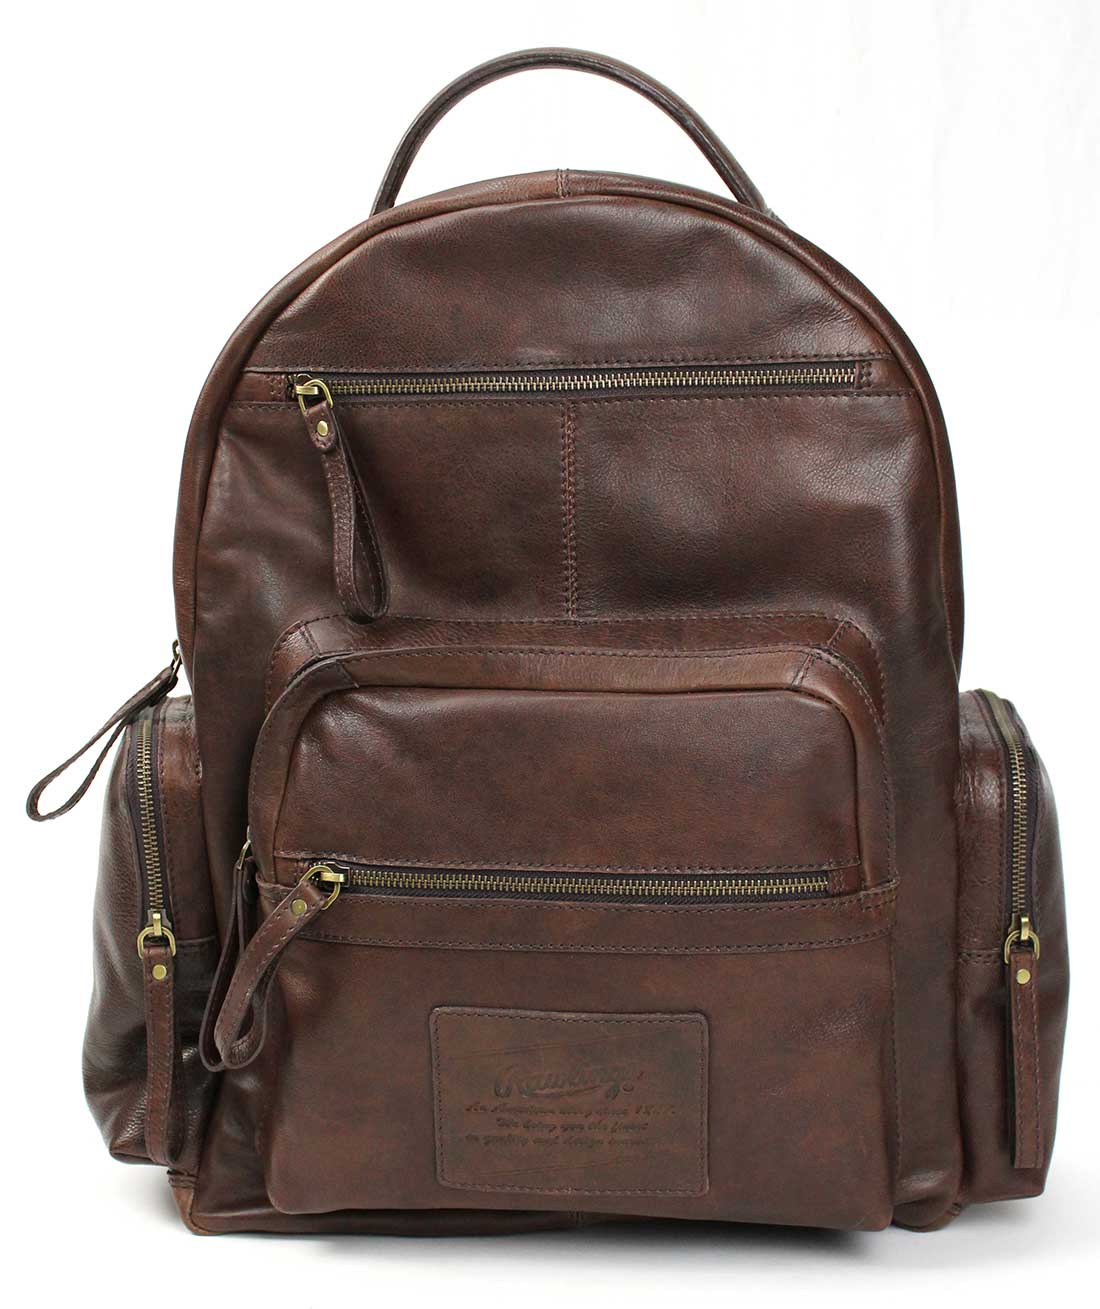 Rawlings Rugged Leather Backpack